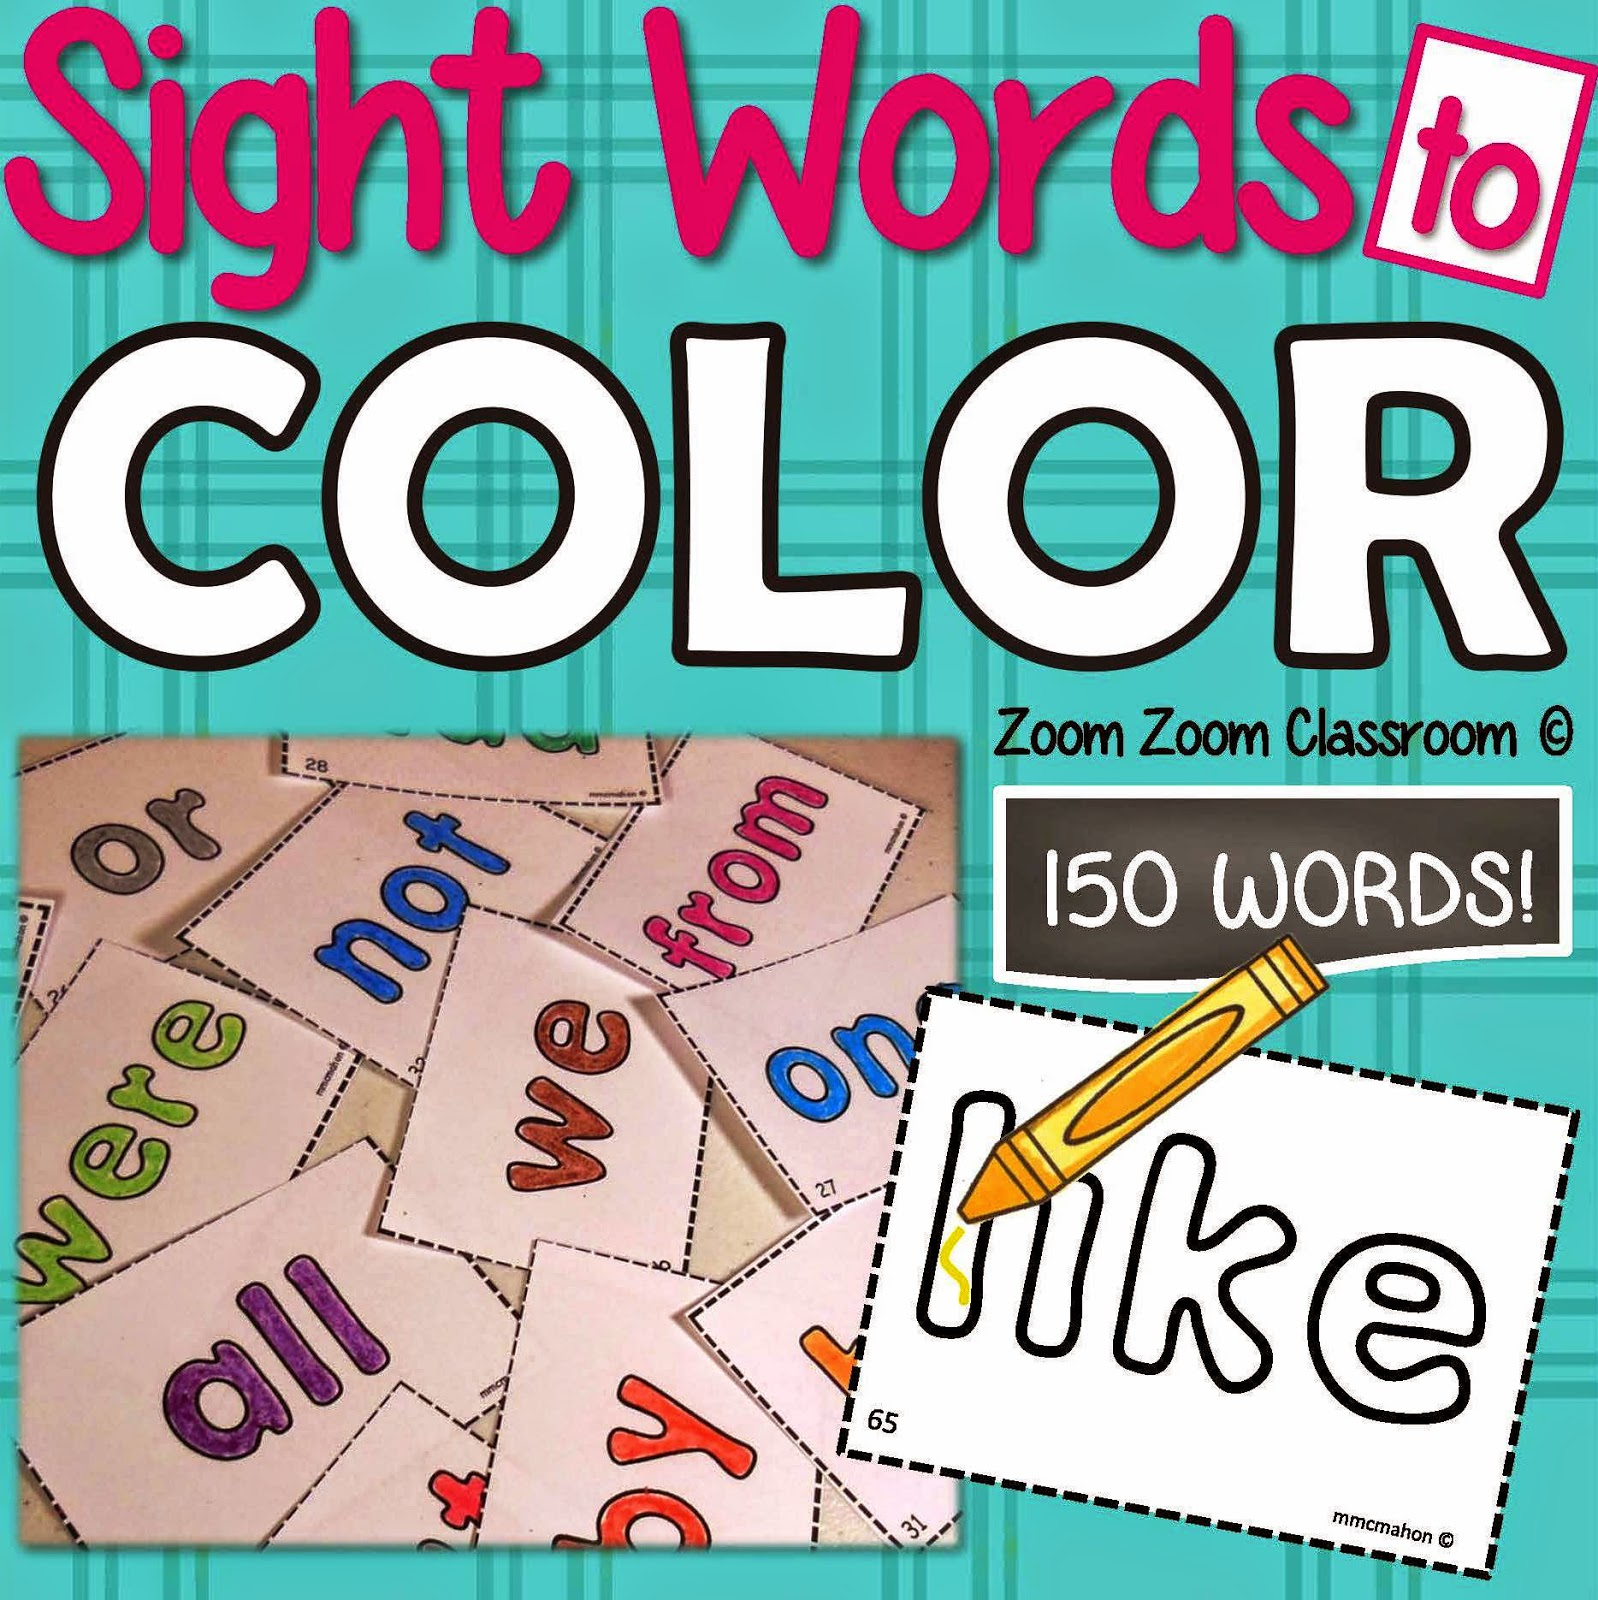 https://www.teacherspayteachers.com/Product/high-frequency-words-467141